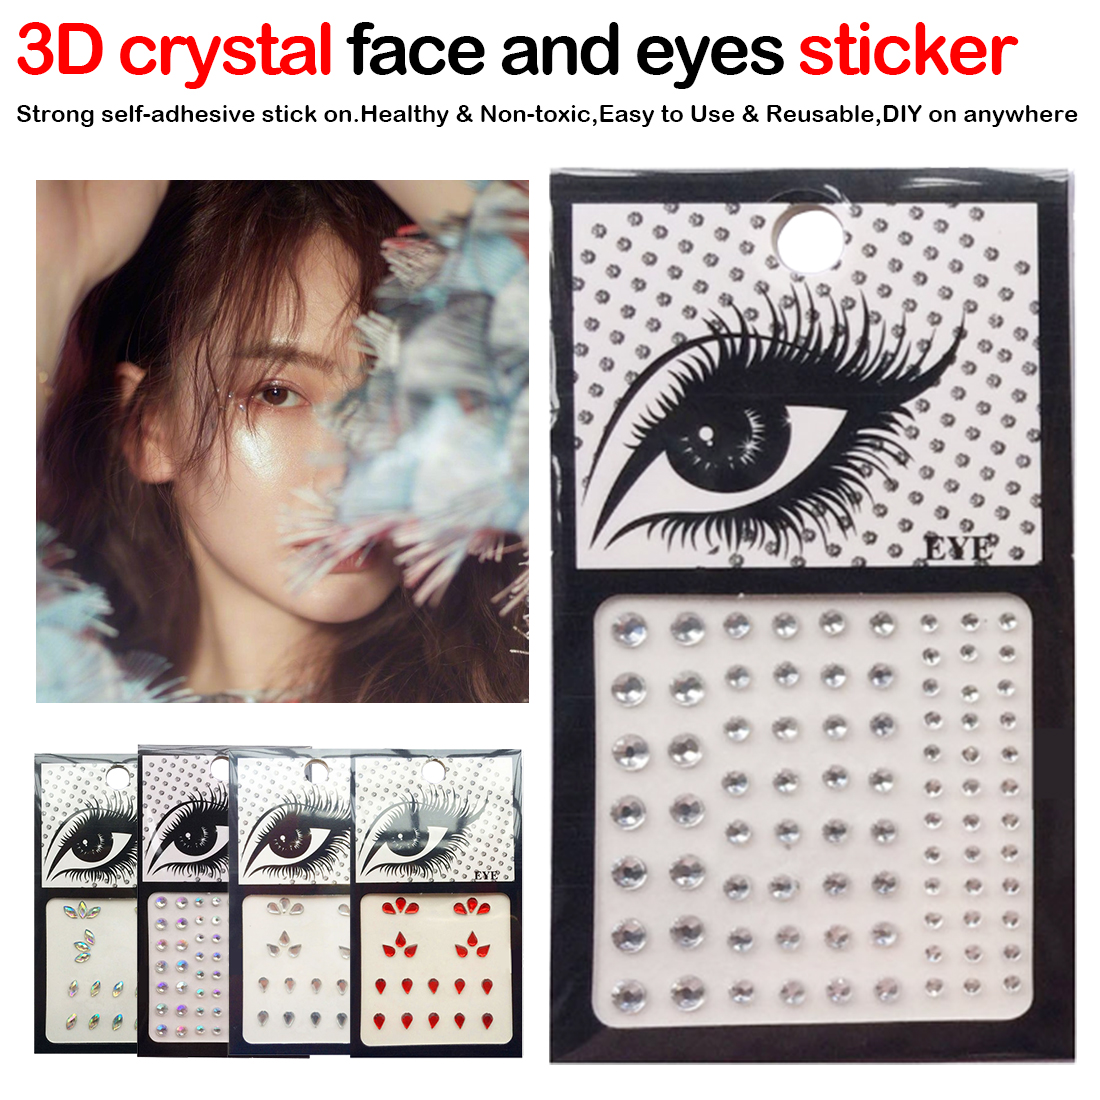 1pcs Glitter 3D DIY Eyebrow Face Body Art Sticker Crystal Glitter Jewelry Party Festival Eye Makeup Stickers